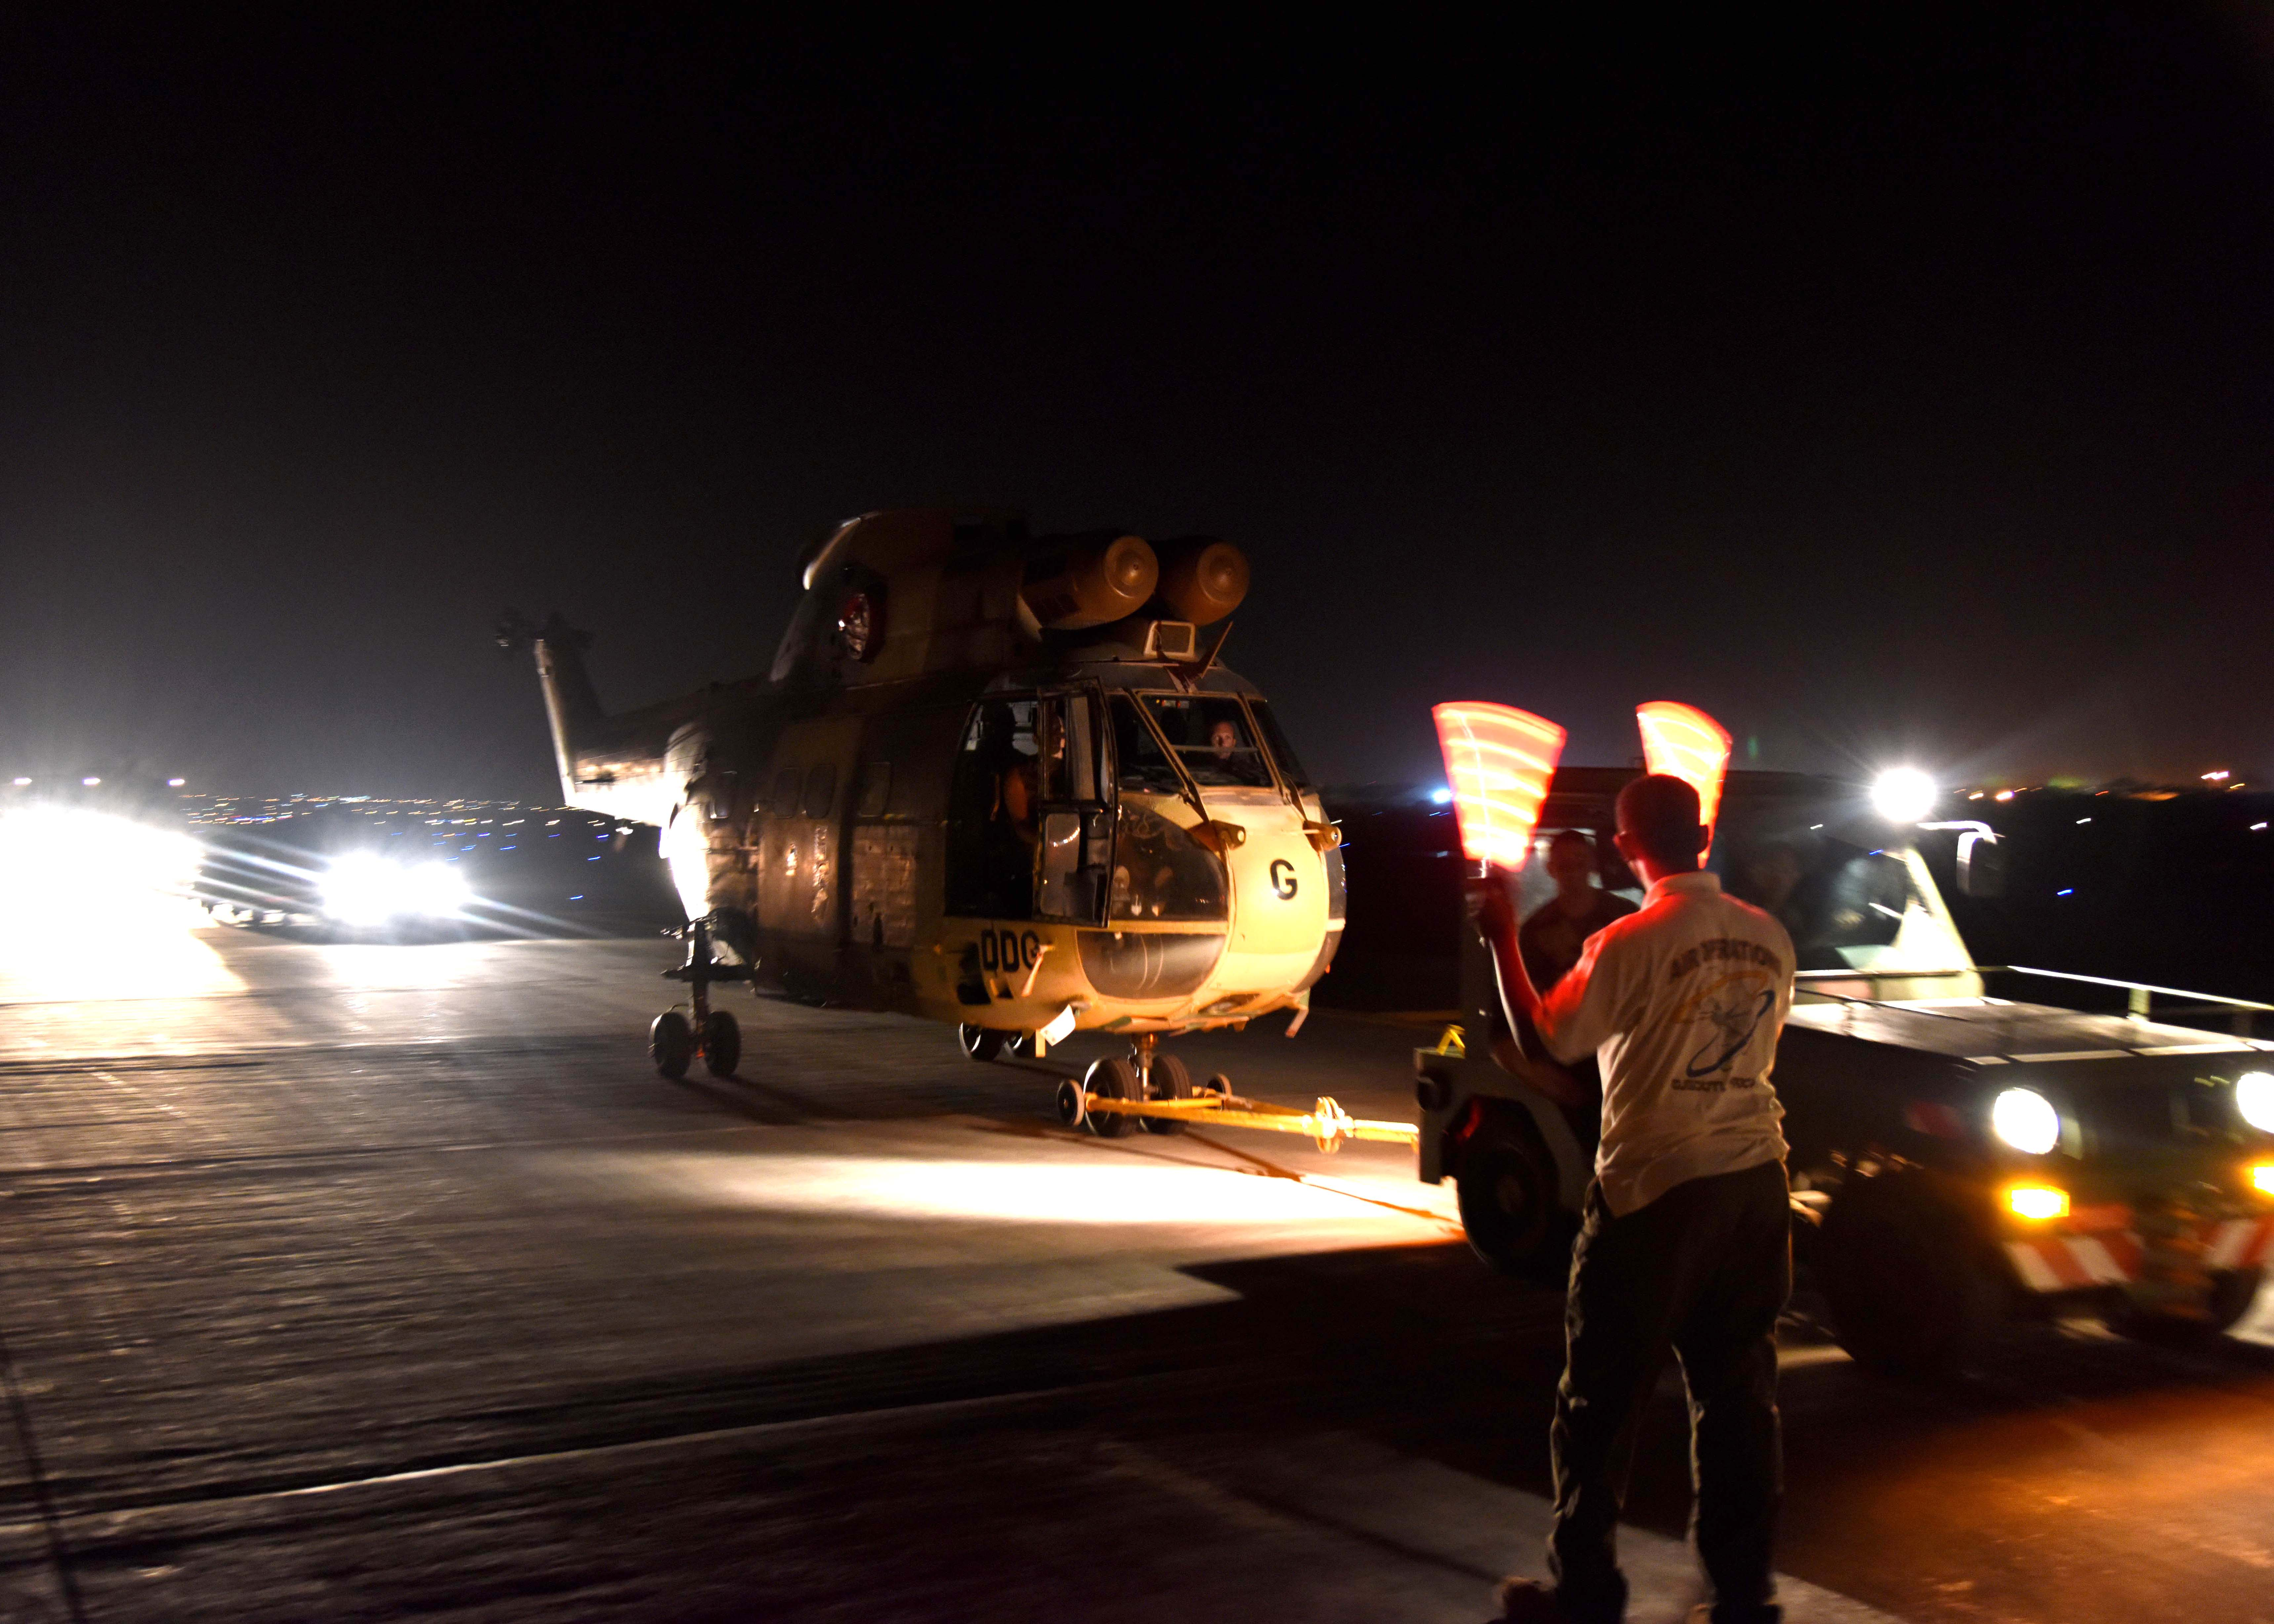 150822-N-DJ346-001 CAMP LEMONNIER, Djibouti (August 22, 2015) French and U.S. service members prepare to transport the first of two French Puma Helicopters and associated Passengers & Cargo to N'Djamena aboard a U.S. Air Force C-17 Globemaster. The helicopters support French operations at the intersecting borders of Libya, Chad and Niger deterring weapons and drug smuggling, and jihadist regularly crossing between nations. This is the first time France has received support from U.S. Forces in Djibouti for any mission outside of East Africa. (U.S. Navy photo by Chief Mass Communication Specialist Donald W. Randall/Released)